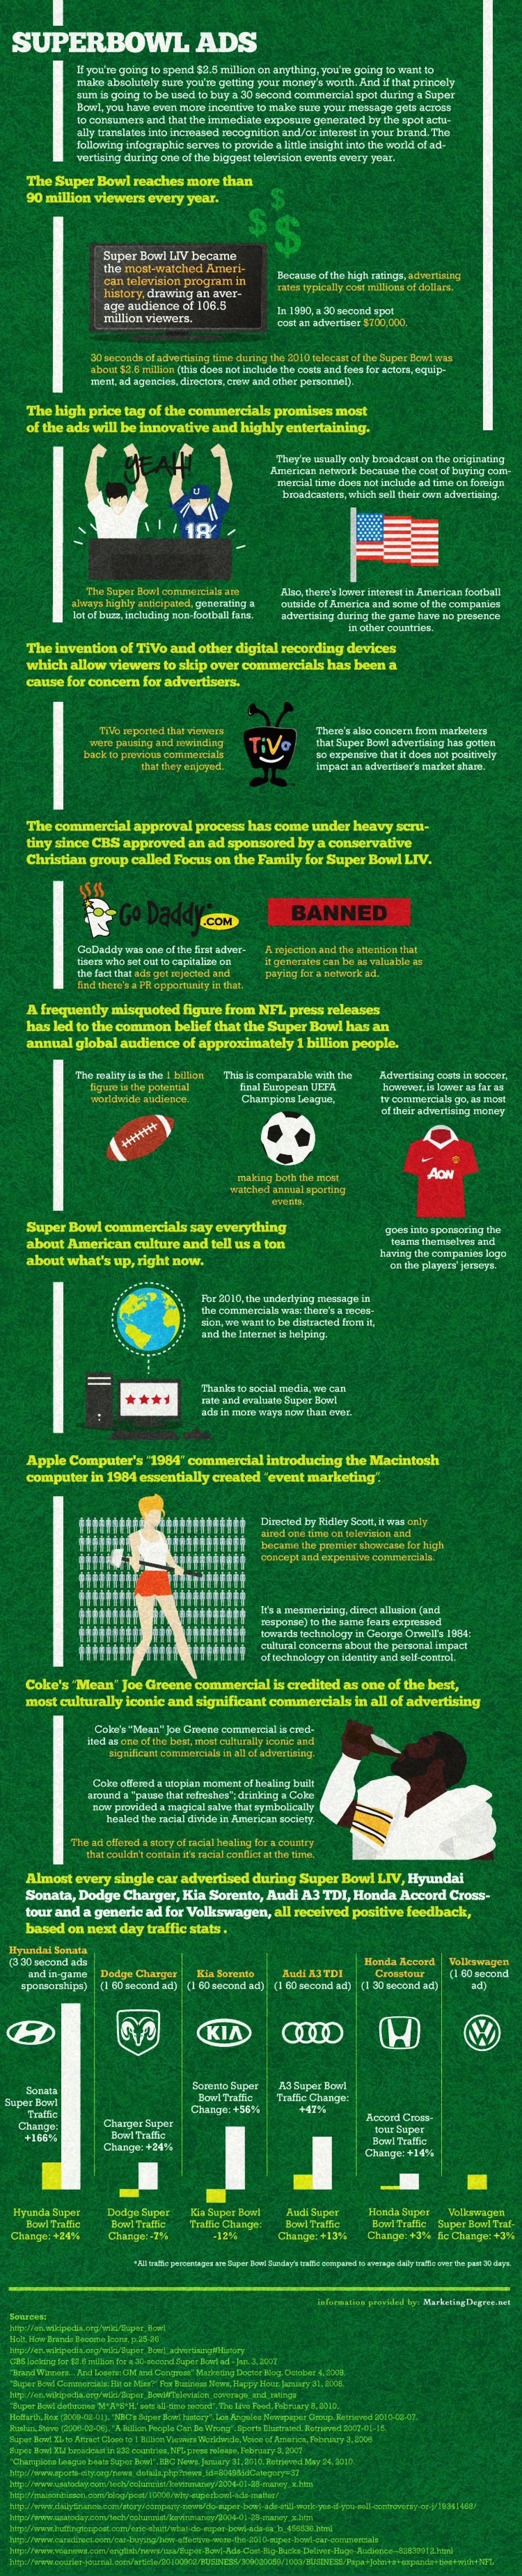 The Cost of Superbowl Ads Infographic